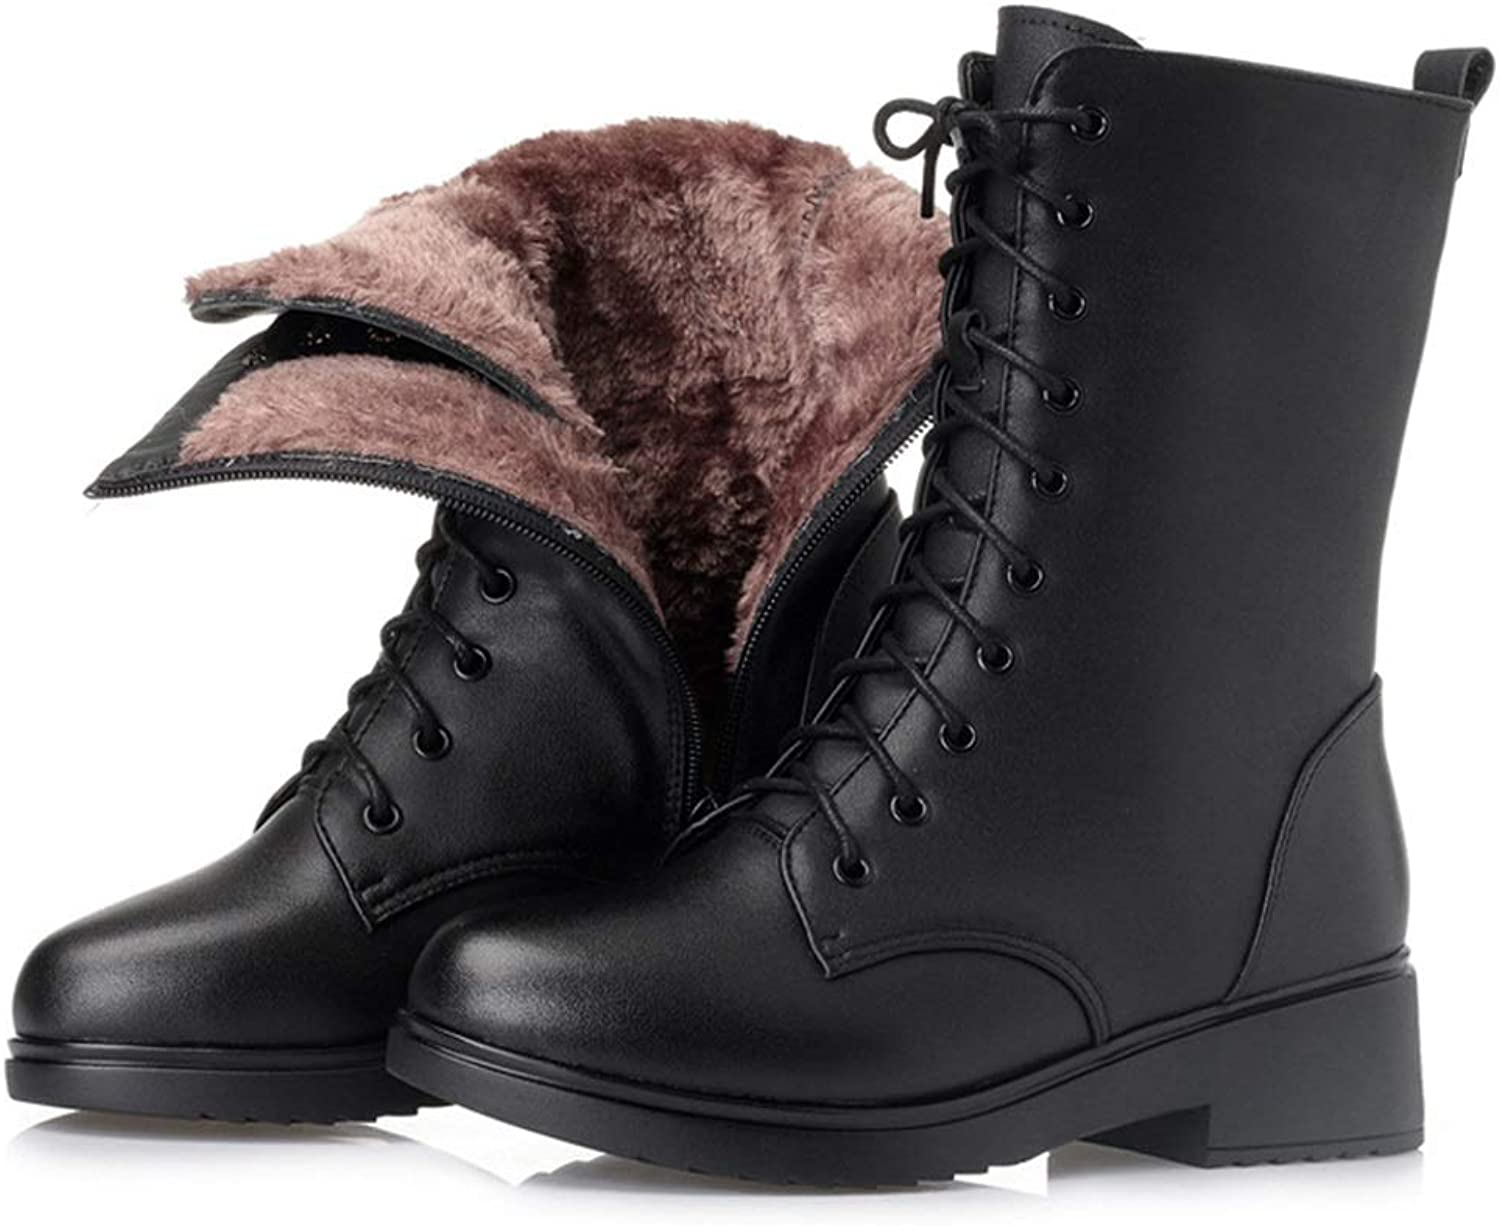 Women's mid-Boots, Winter Boots Velvet Boots Mid-Heeled Women's shoes British Style Martin Boots New Military Boots (color   A, Size   41)